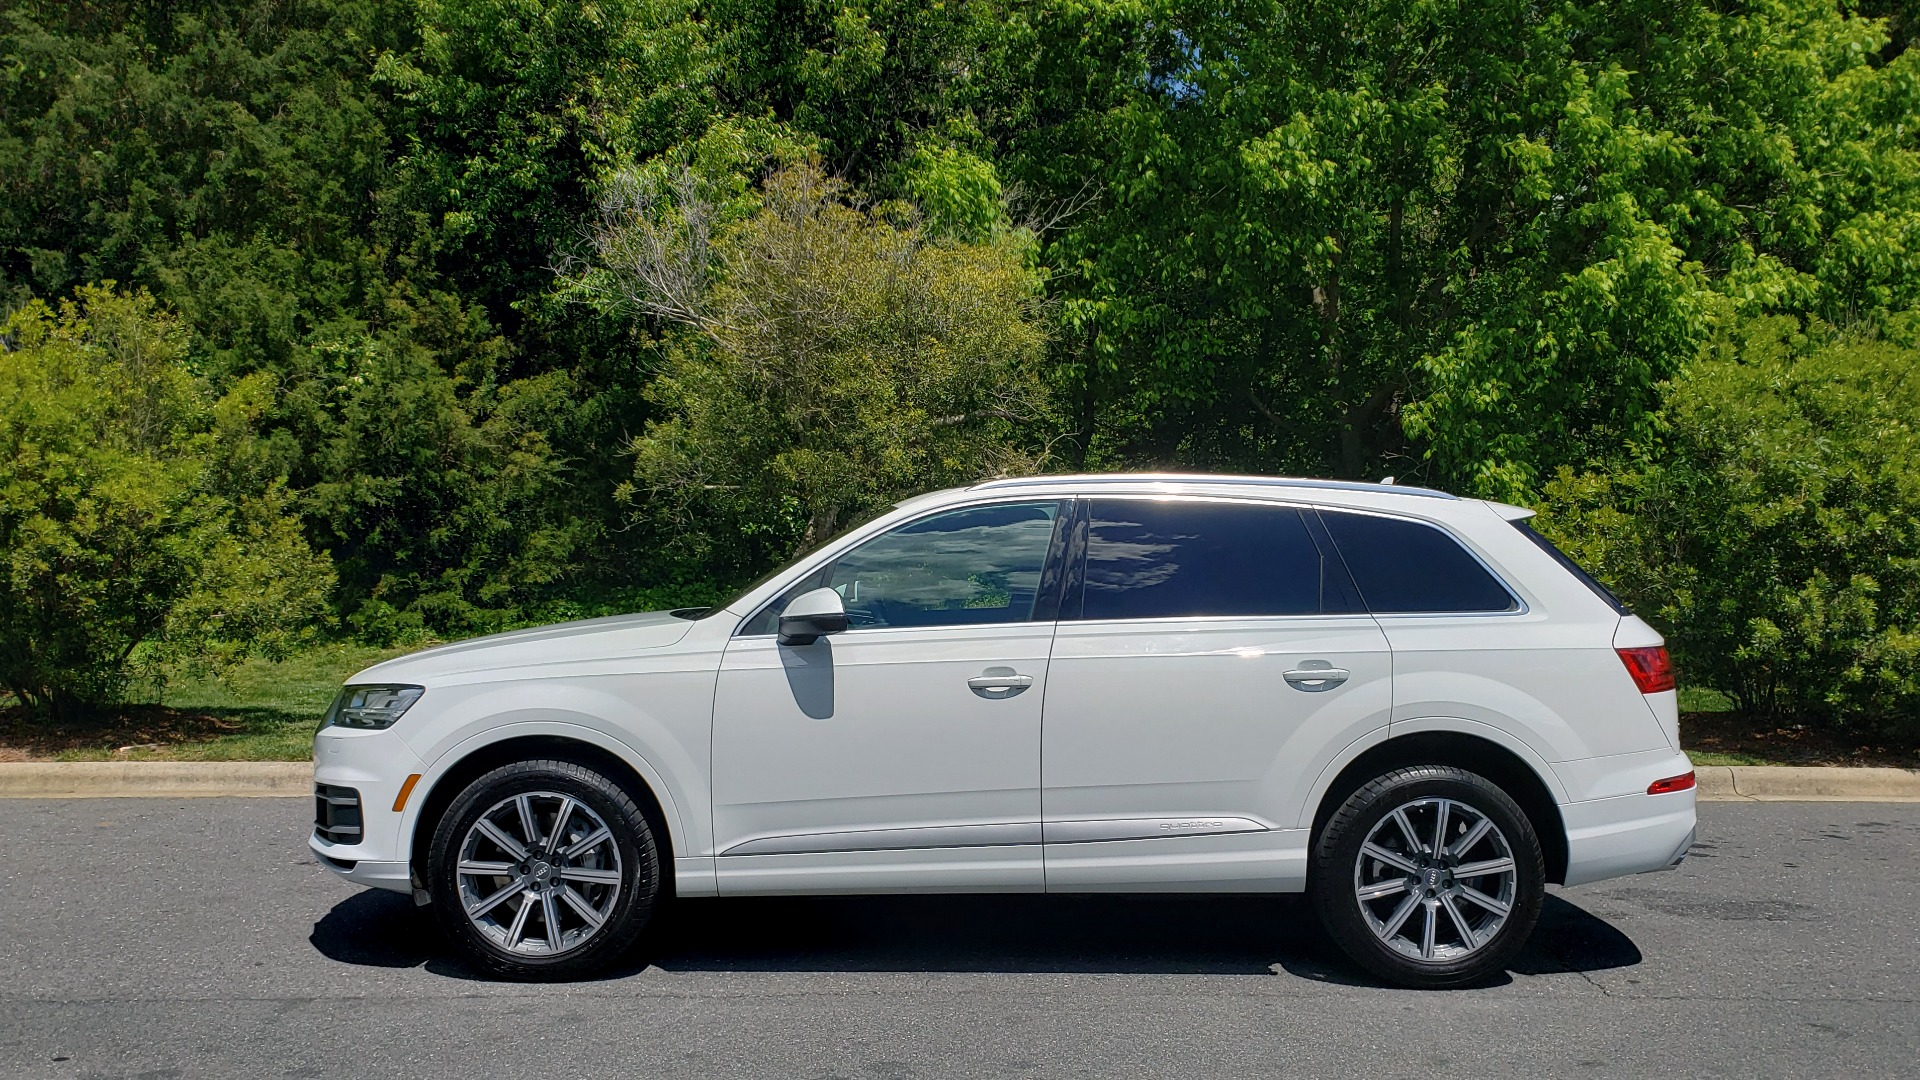 Used 2017 Audi Q7 PREMIUM PLUS / VISION PKG / NAV / PANO-ROOF / 3-ROW / REARVIEW for sale Sold at Formula Imports in Charlotte NC 28227 2